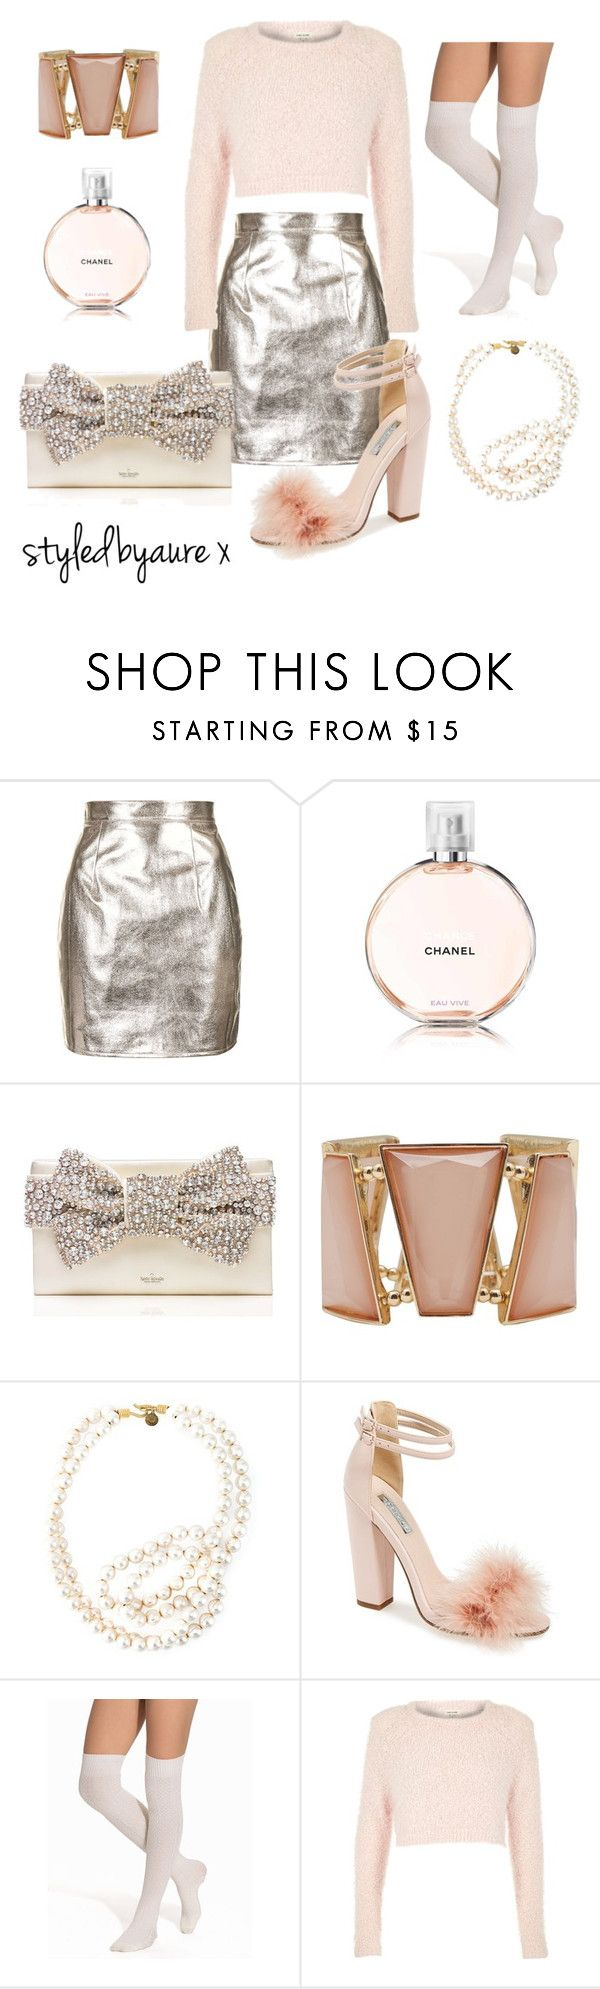 """""""Chanel Oberlin Inspired"""" by styledbyaure ❤ liked on Polyvore featuring Oh My Love, Kate Spade, M&Co, STELLA McCARTNEY, Topshop, OROBLU and River Island"""